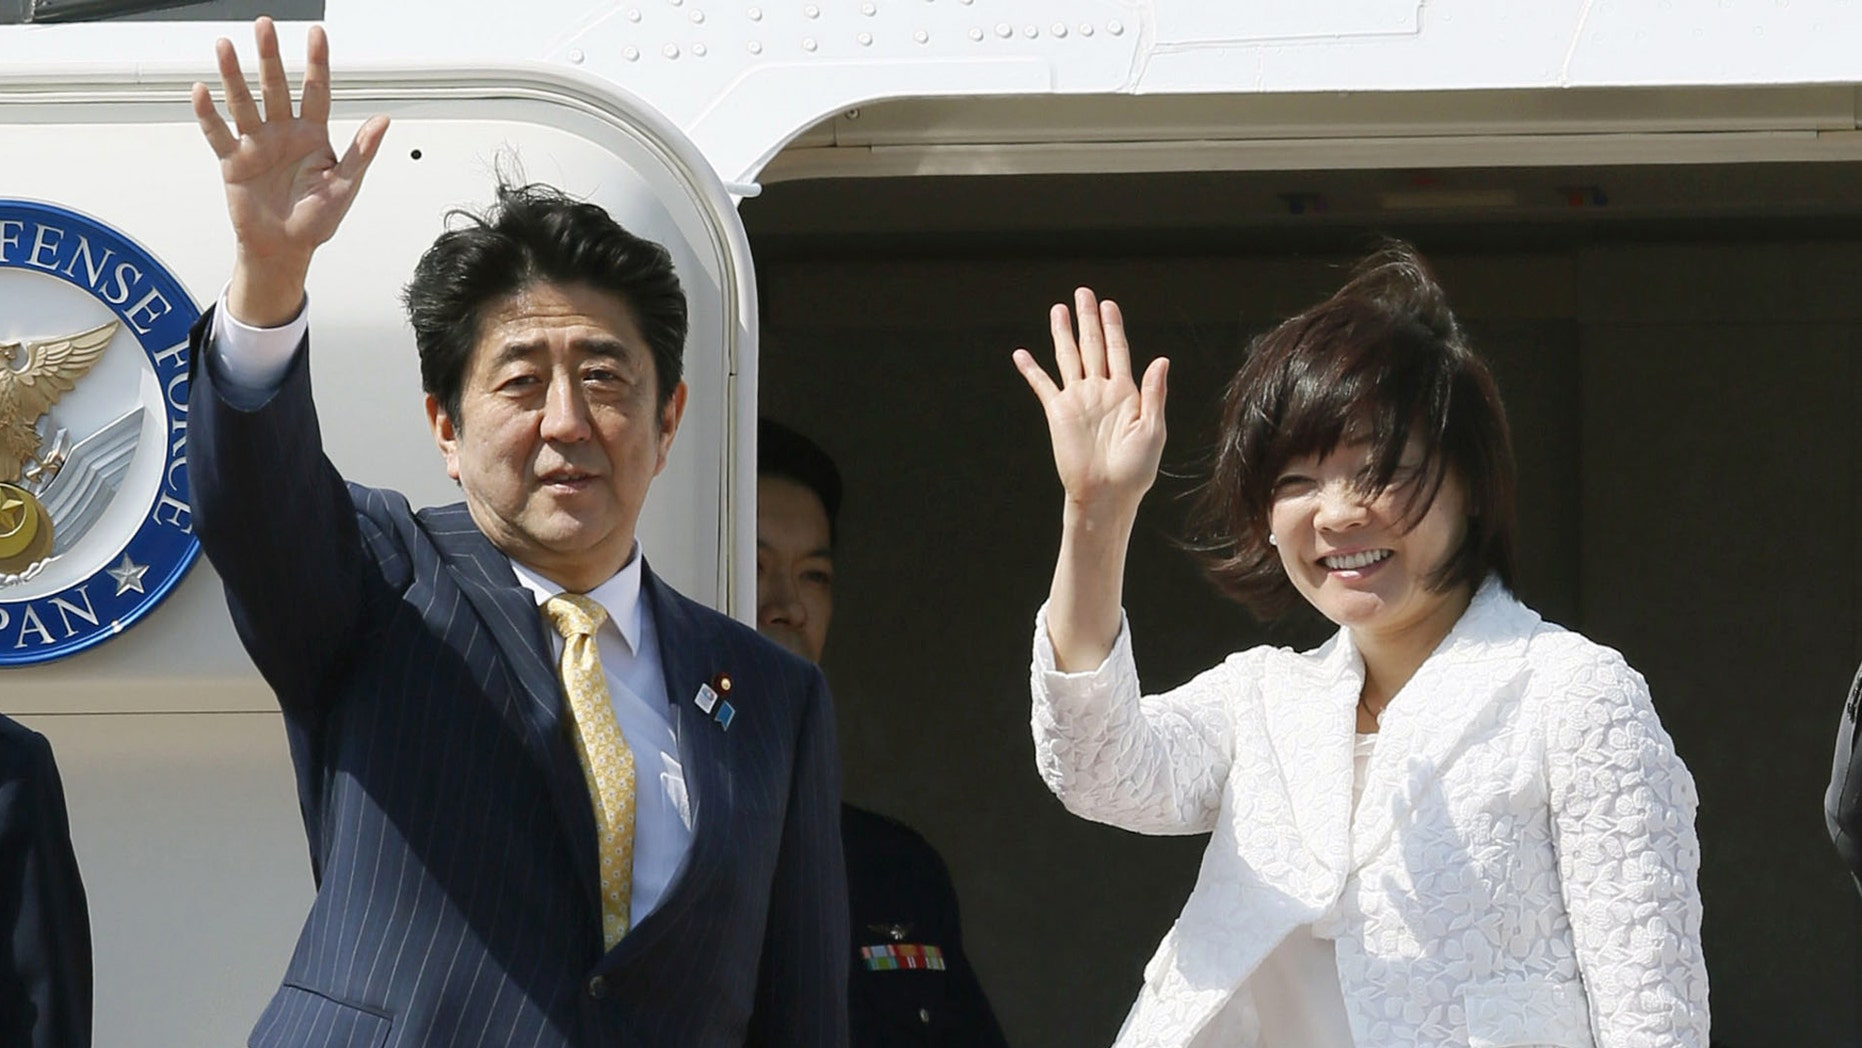 Japanese Prime Minister Shinzo Abe and his wife Akie wave before boarding a plane at Tokyo's Haneda Airport Friday, May 24, 2013. Abe is traveling to Myanmar for a three-day trip, the first visit to the country by a Japanese leader in 36 years. (AP Photo/Kyodo News)  JAPAN OUT, MANDATORY CREDIT